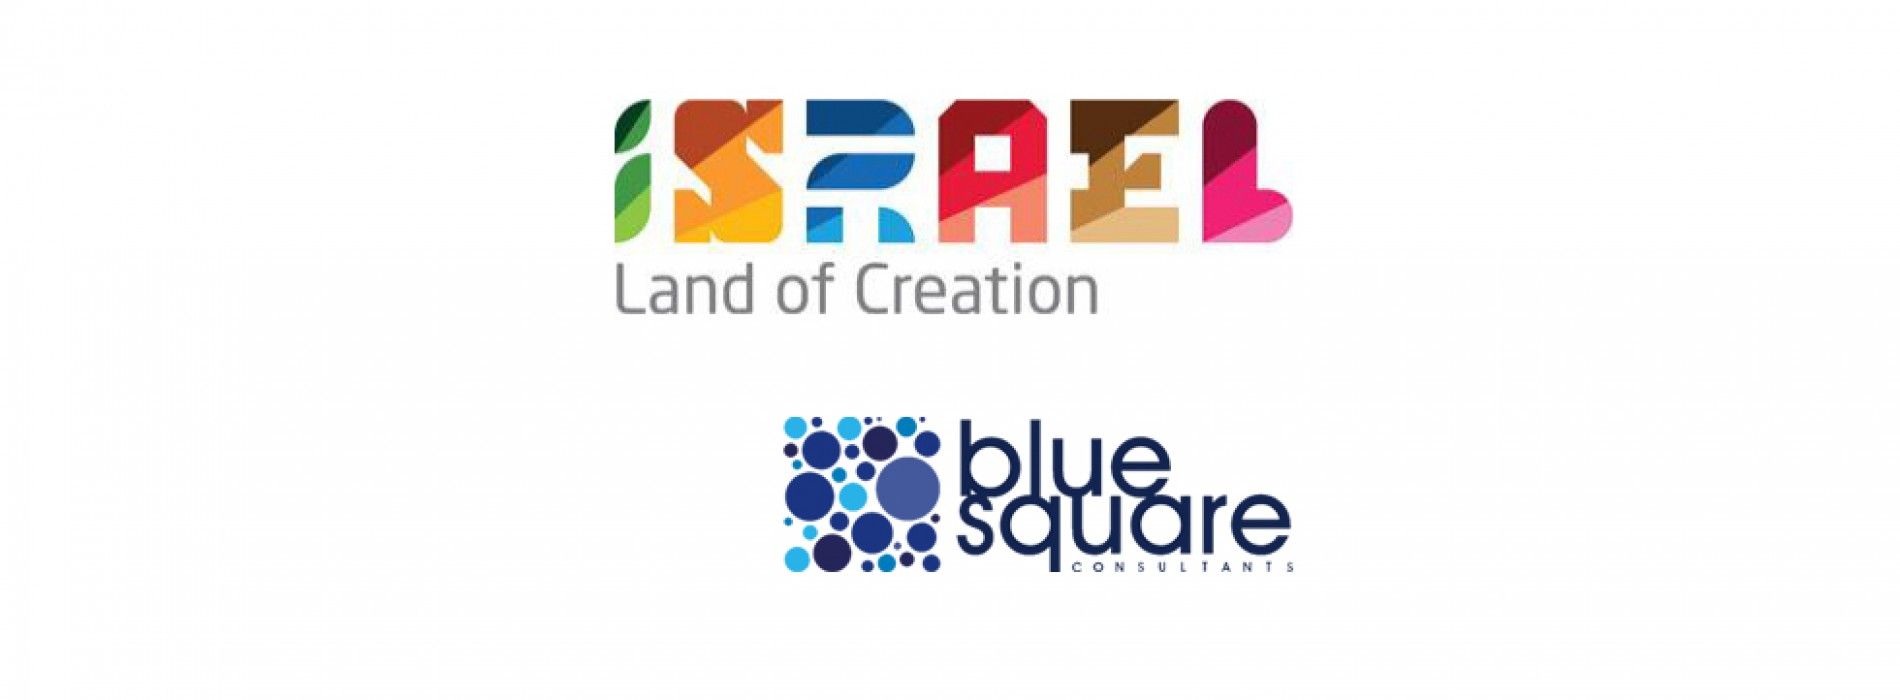 Israel Ministry of Tourism appoints Blue Square Consultants as new PR partner